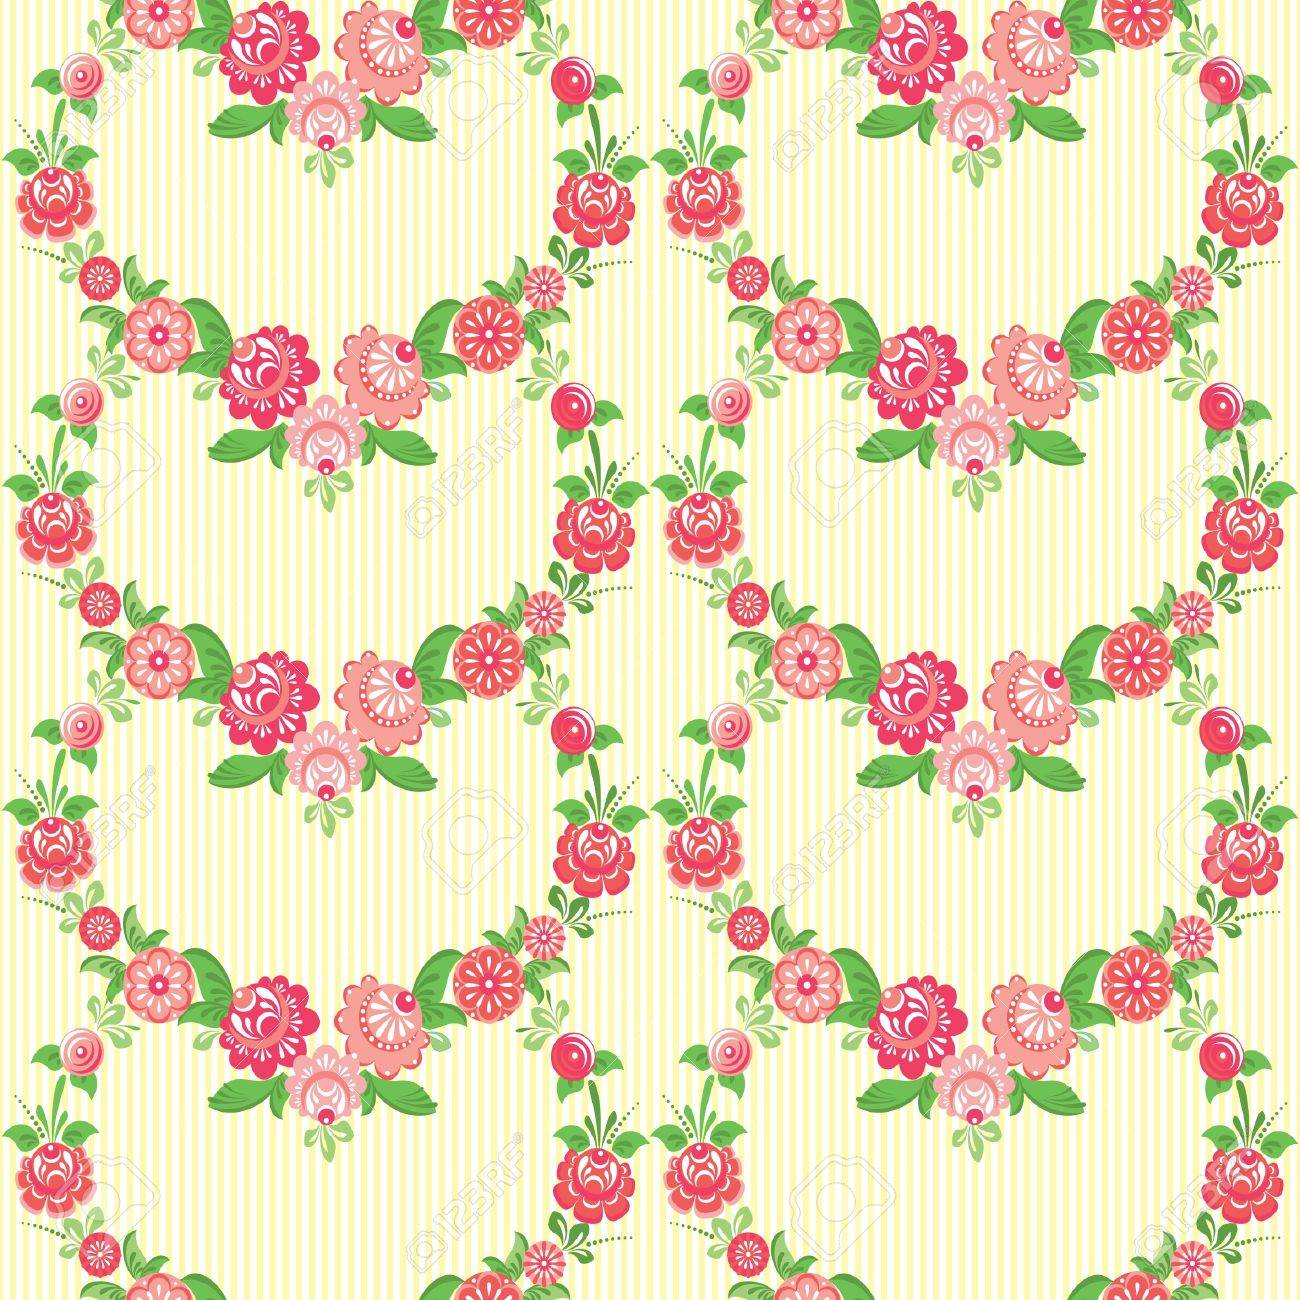 Classic Floral Wallpaper With Decorative Flowers Royalty Free